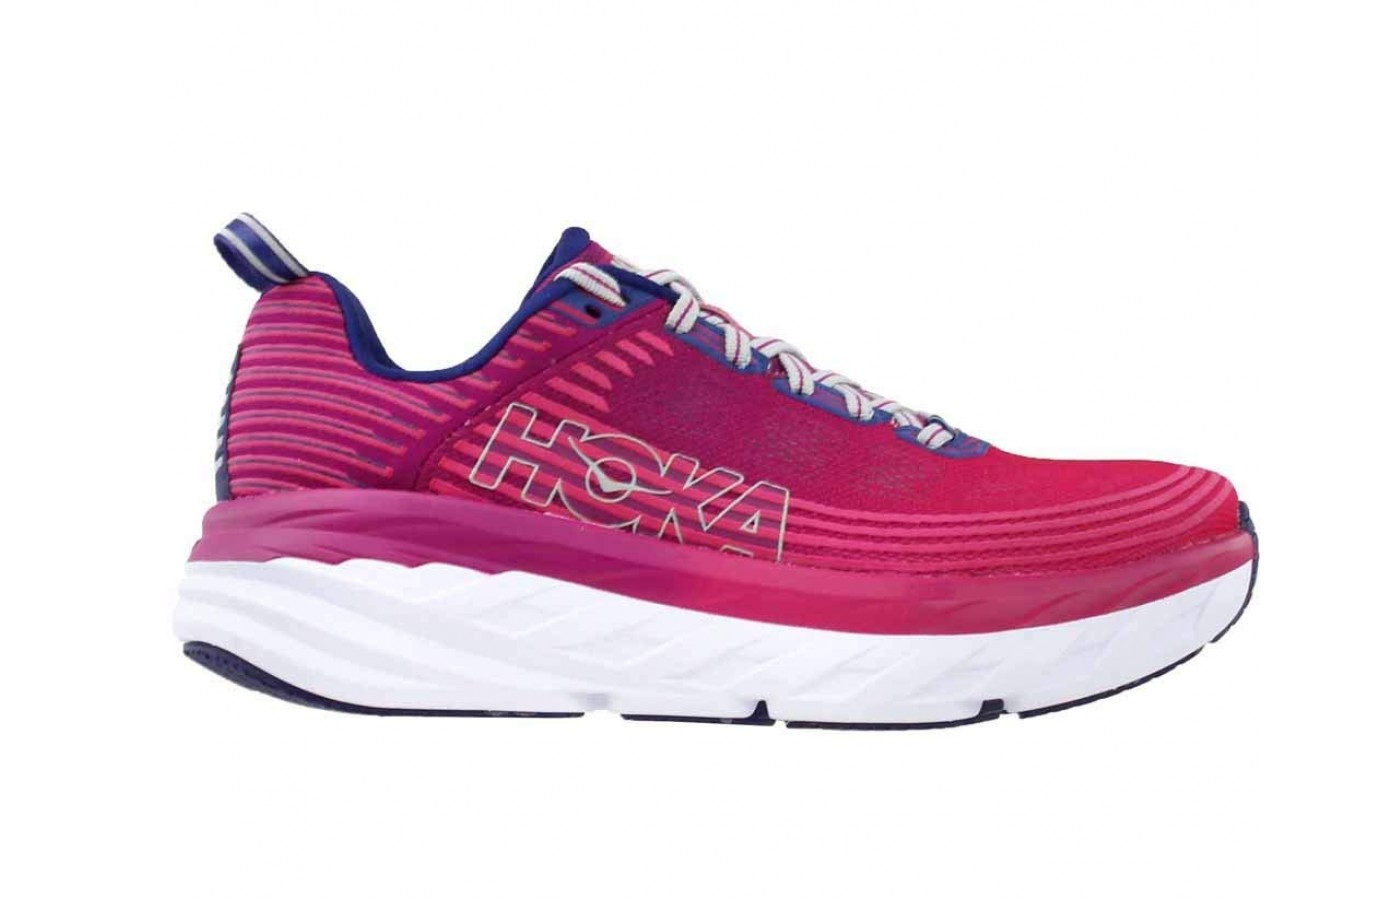 Hoka One One Bondi 6 side